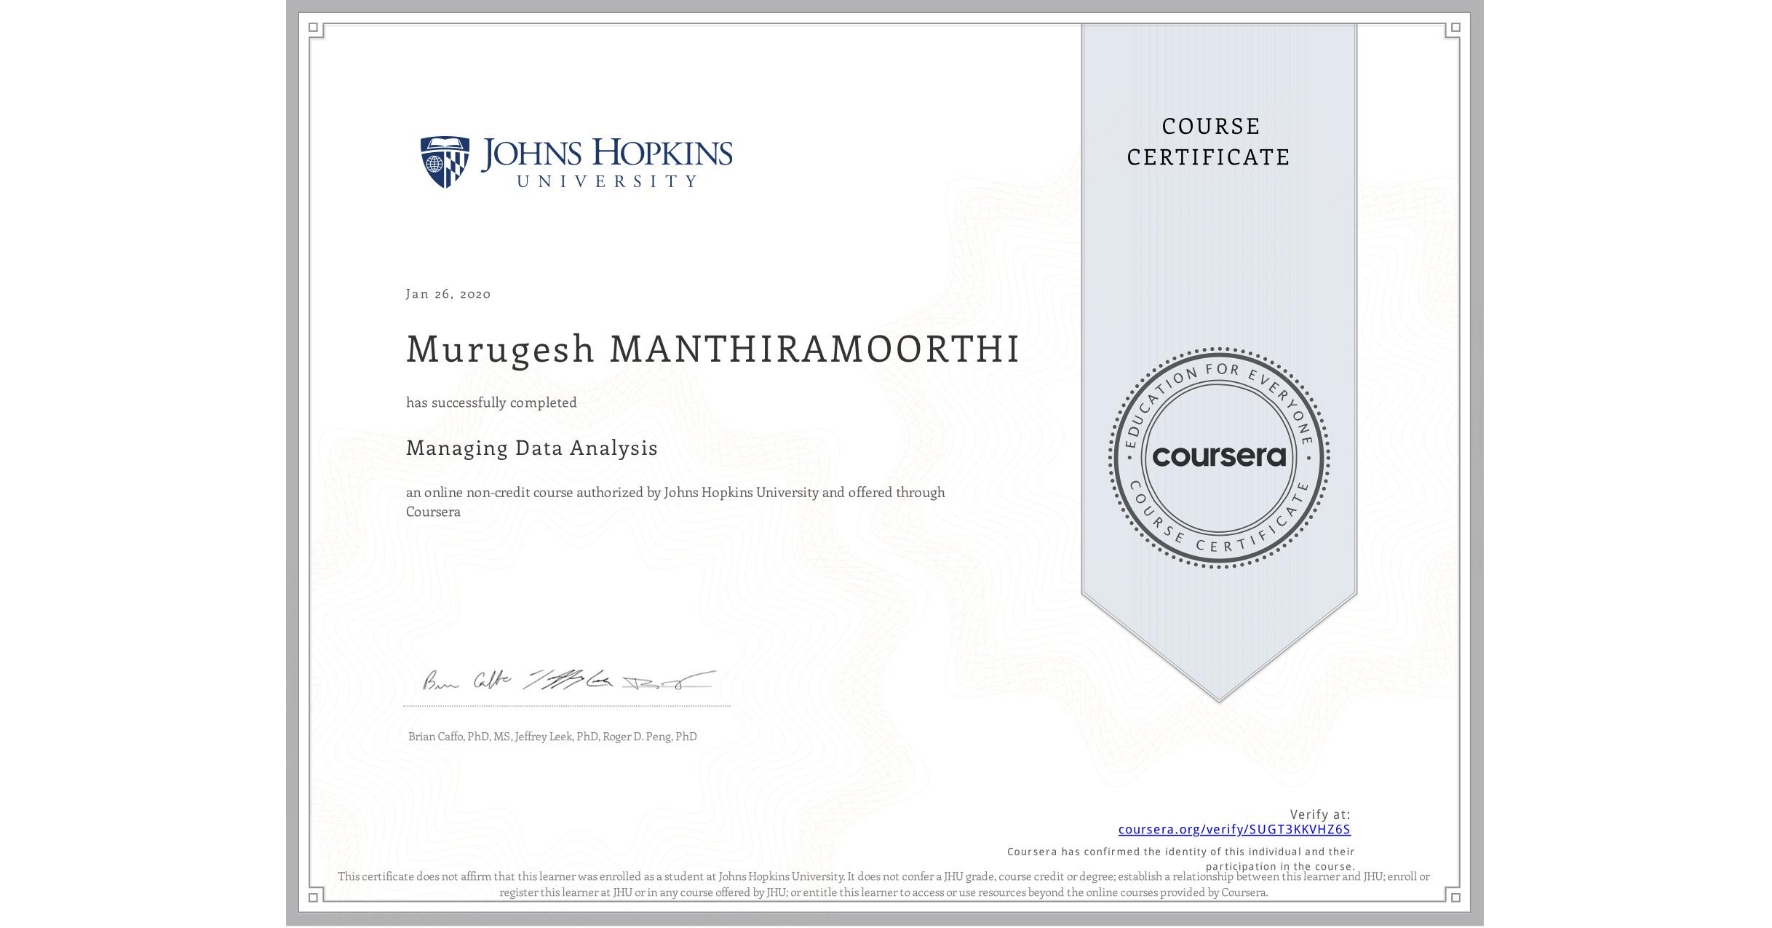 View certificate for Murugesh Manthiramoorthi, Managing Data Analysis, an online non-credit course authorized by Johns Hopkins University and offered through Coursera